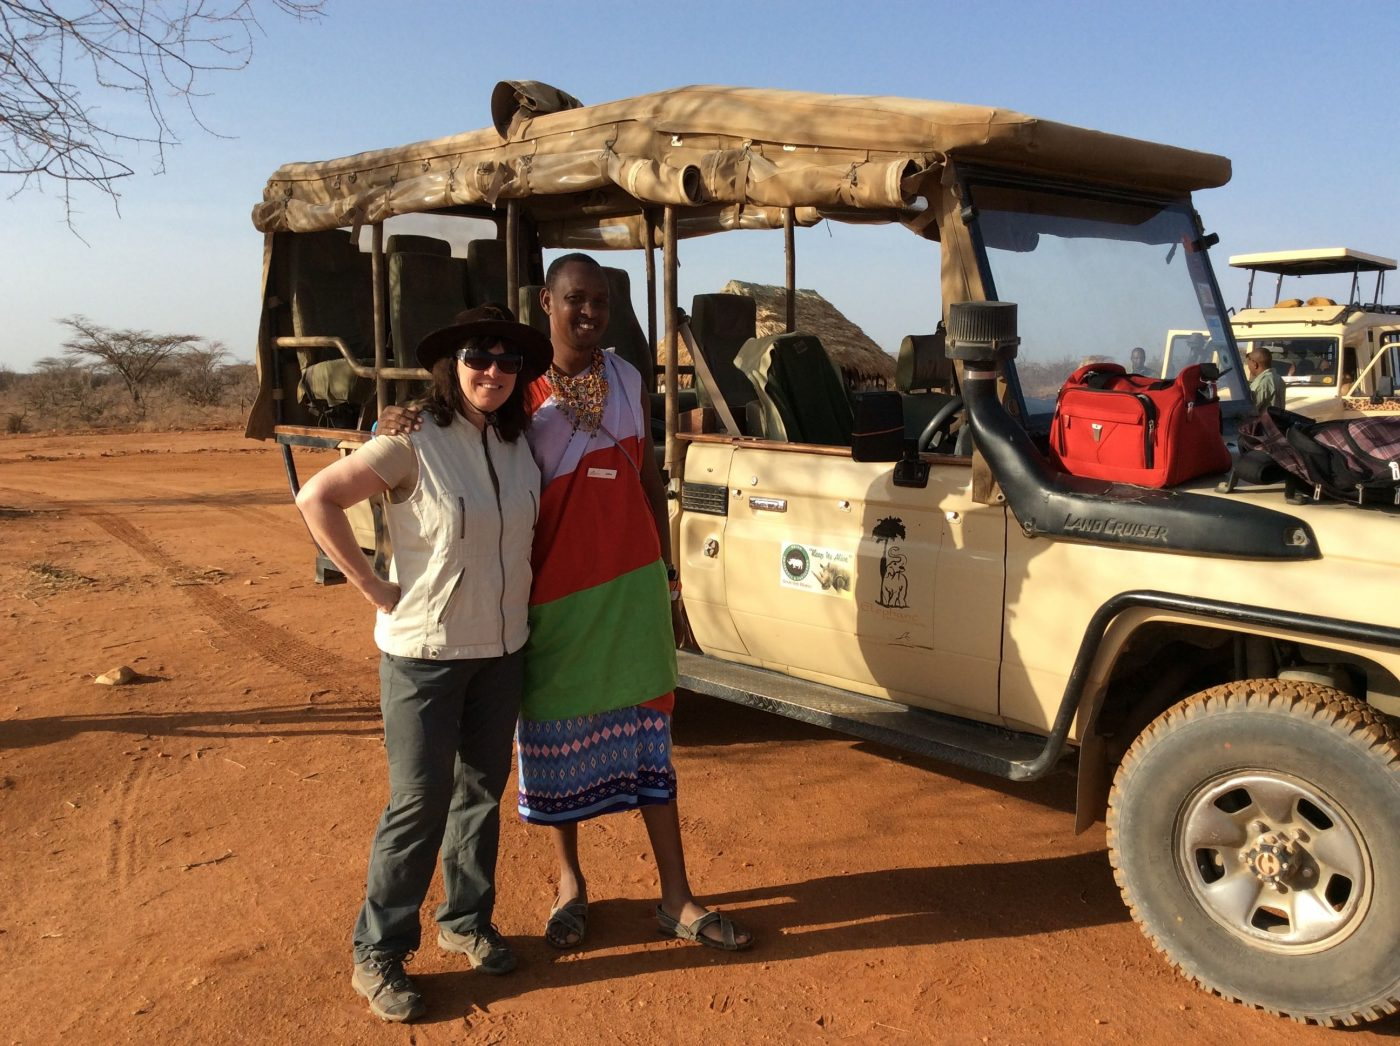 Safari Lodges in Kenya: Shannon (author) with Msasai Guide ready for a Safari